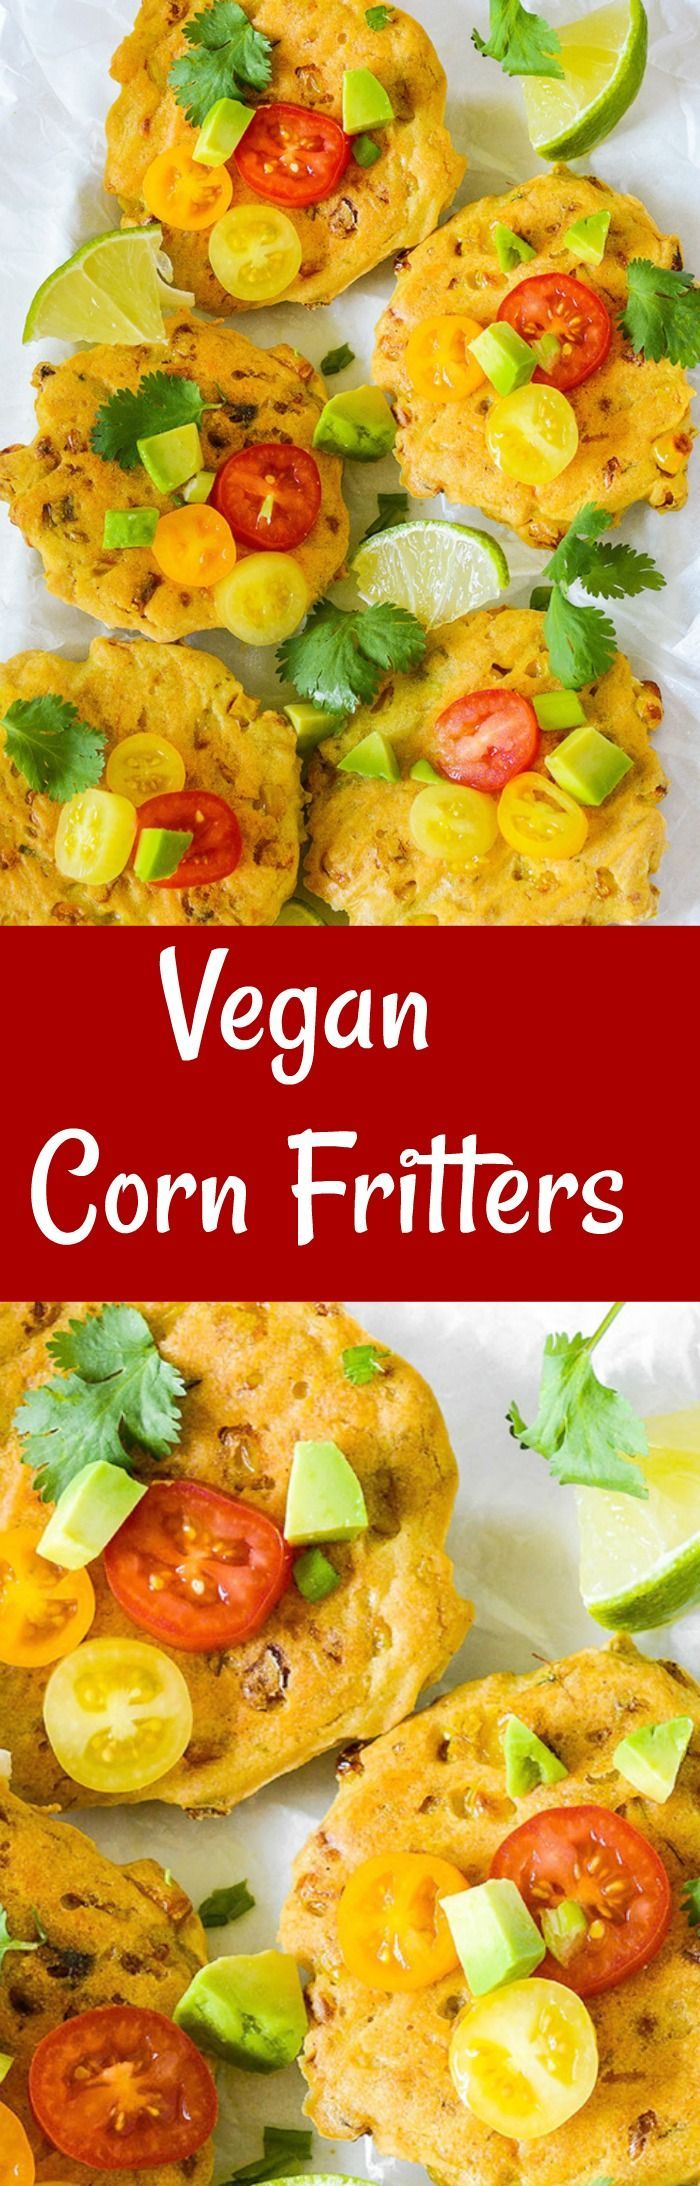 Vegan Corn Fritters, so delicious, crisp on the outside and loaded corn kernels.